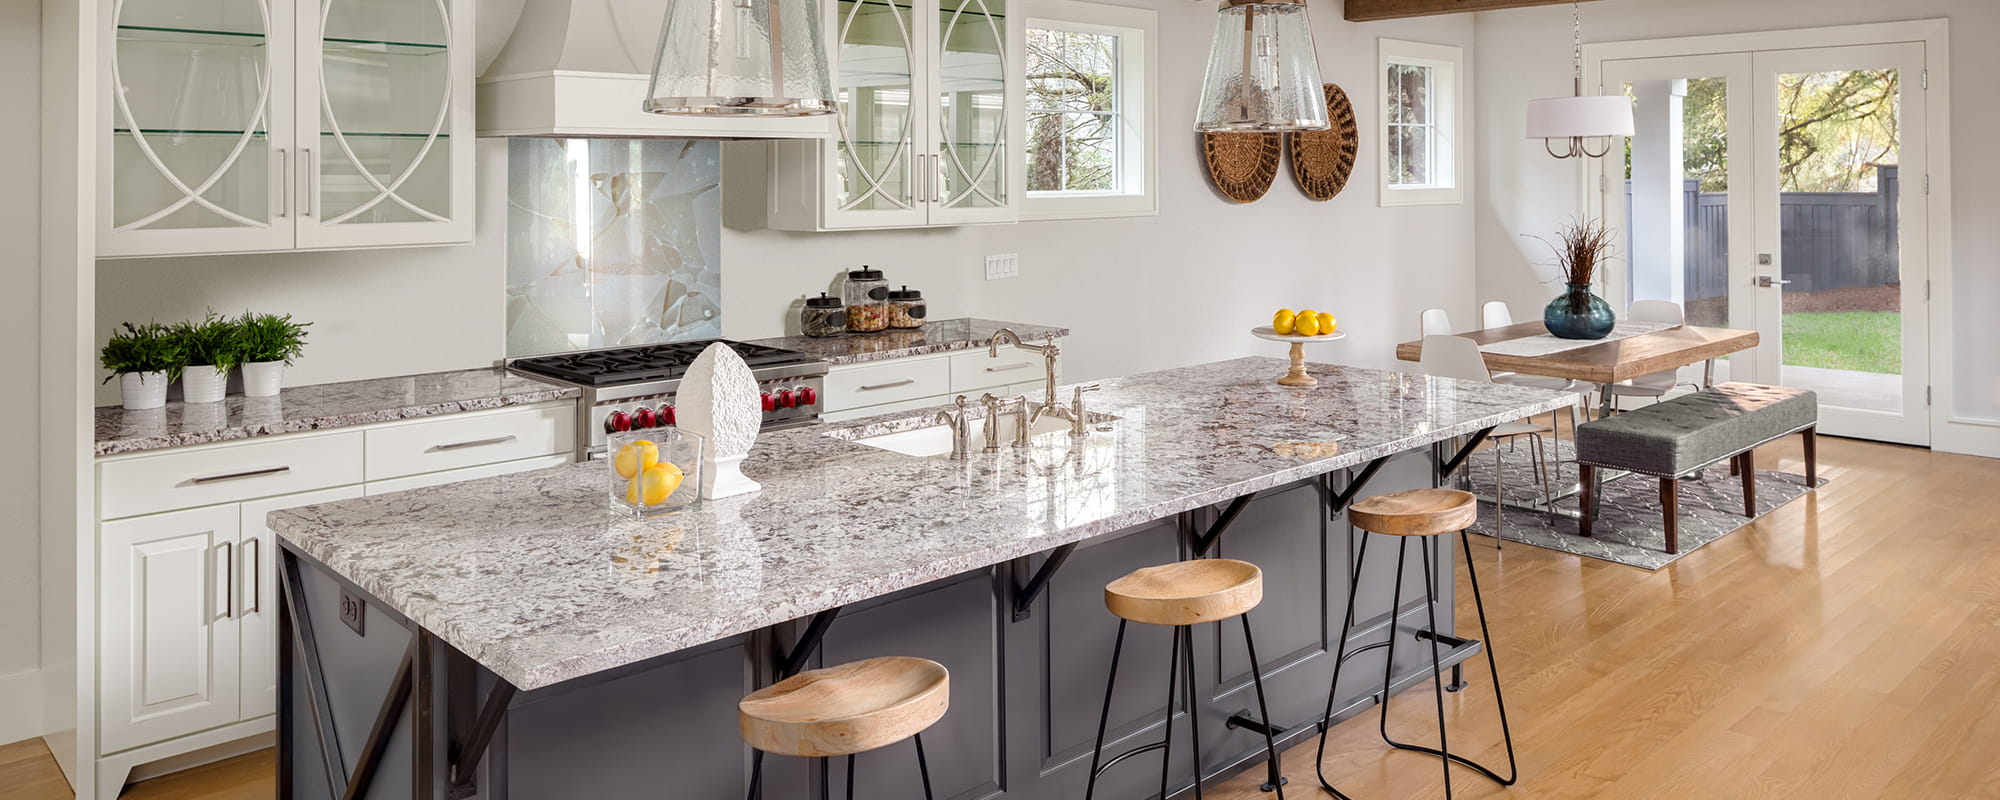 Grout-Free Backsplash